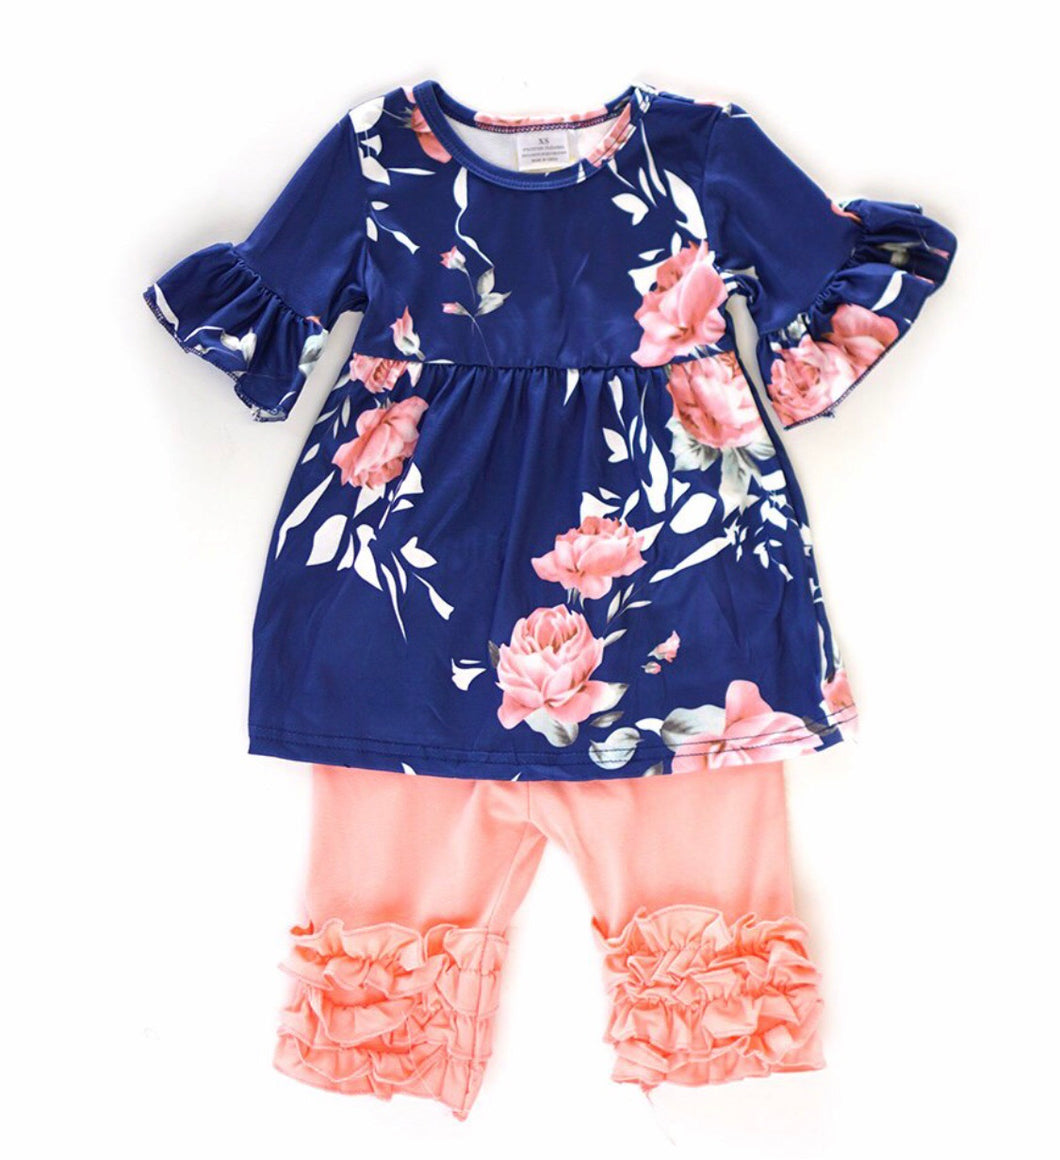 Floral Short Sleeve Set with Pink Shorts